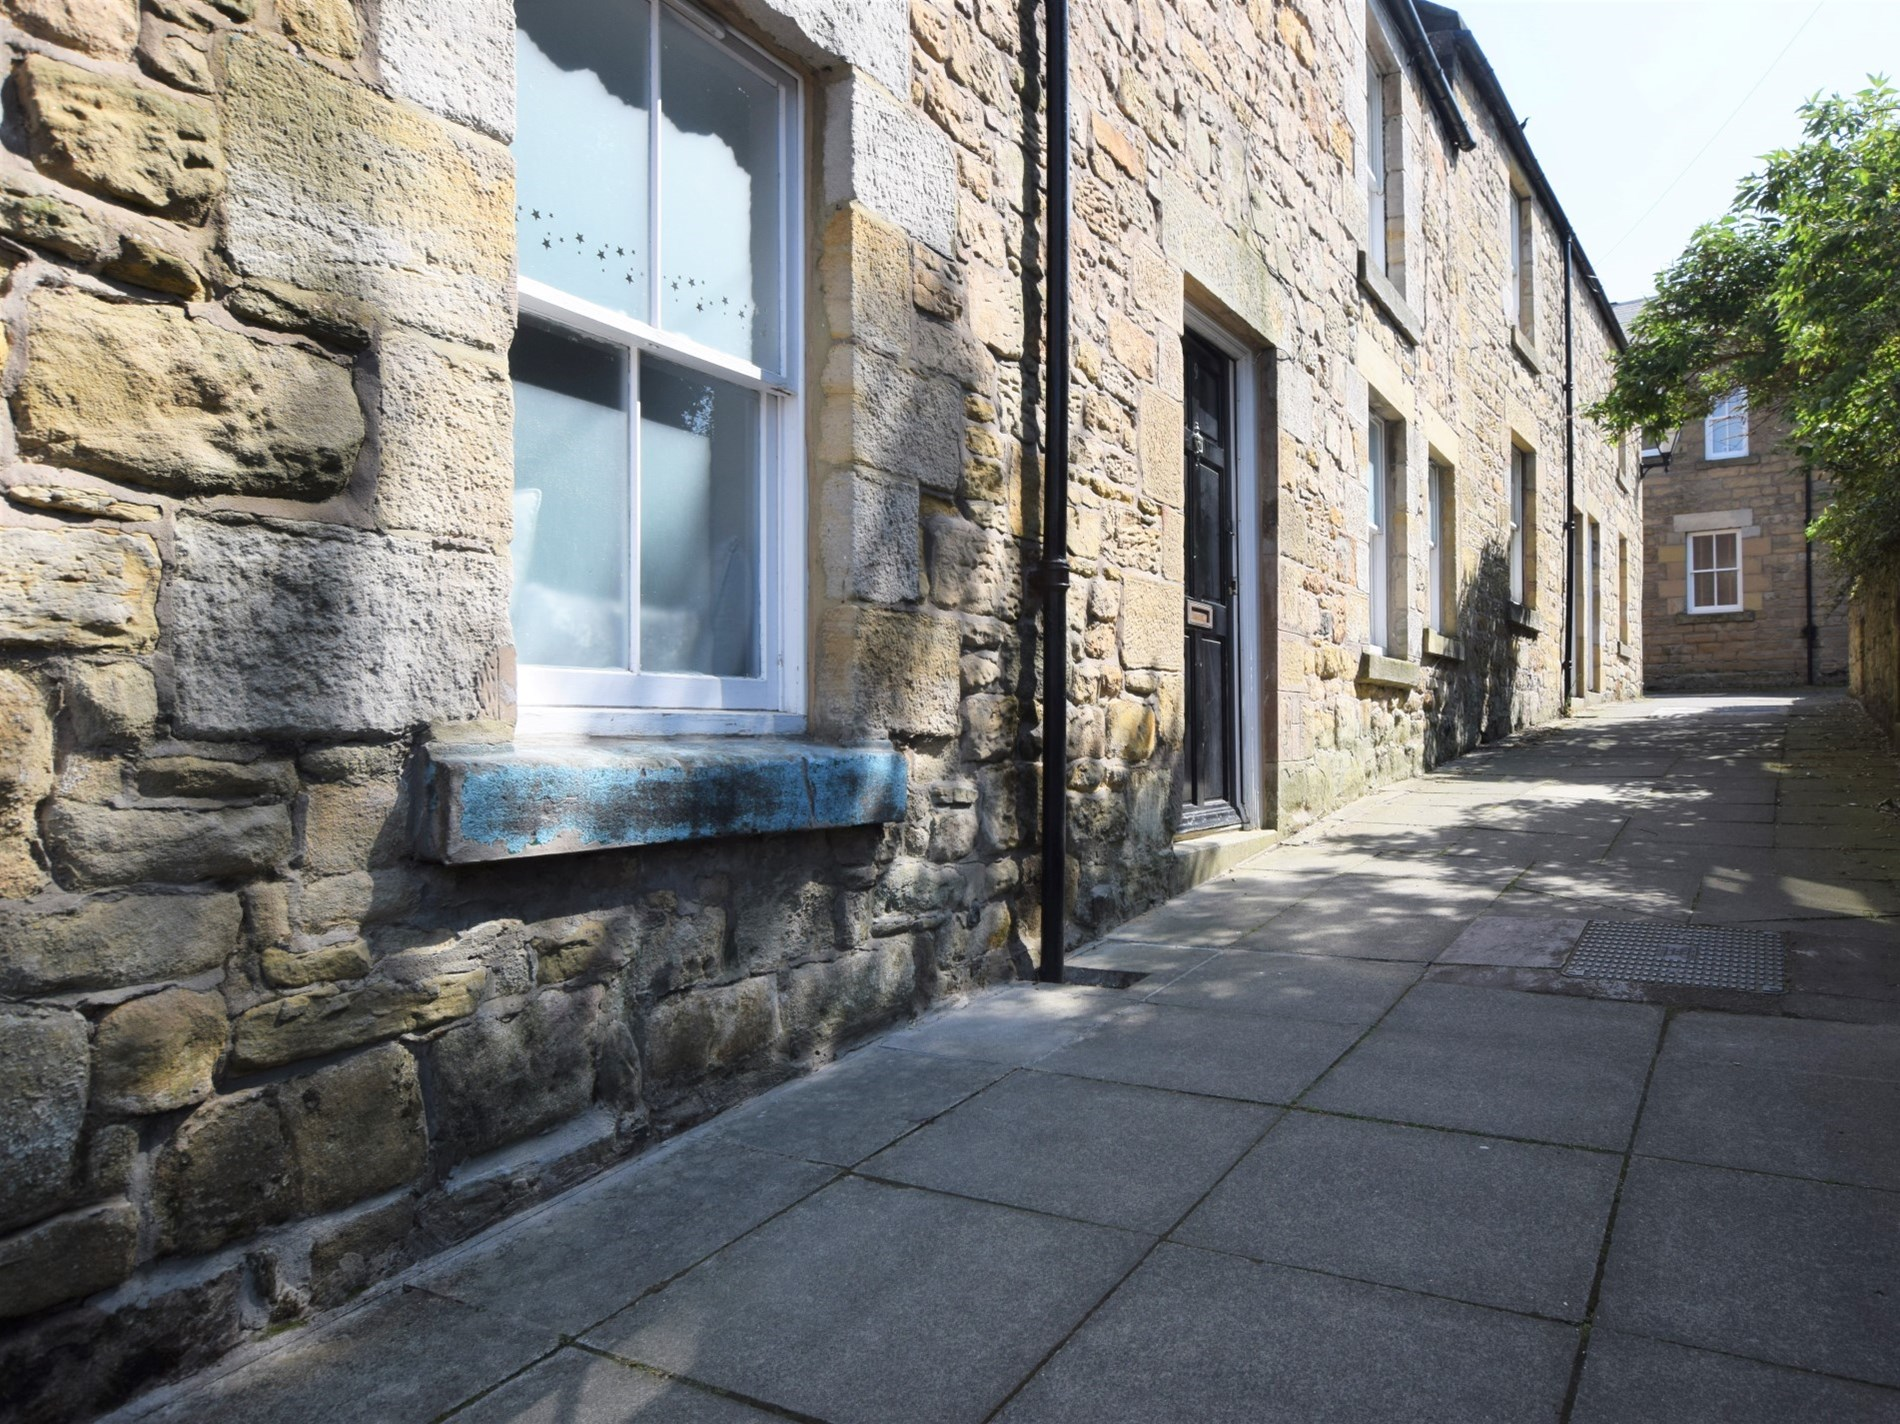 1 Bedroom Cottage in Alnwick, Northumbria